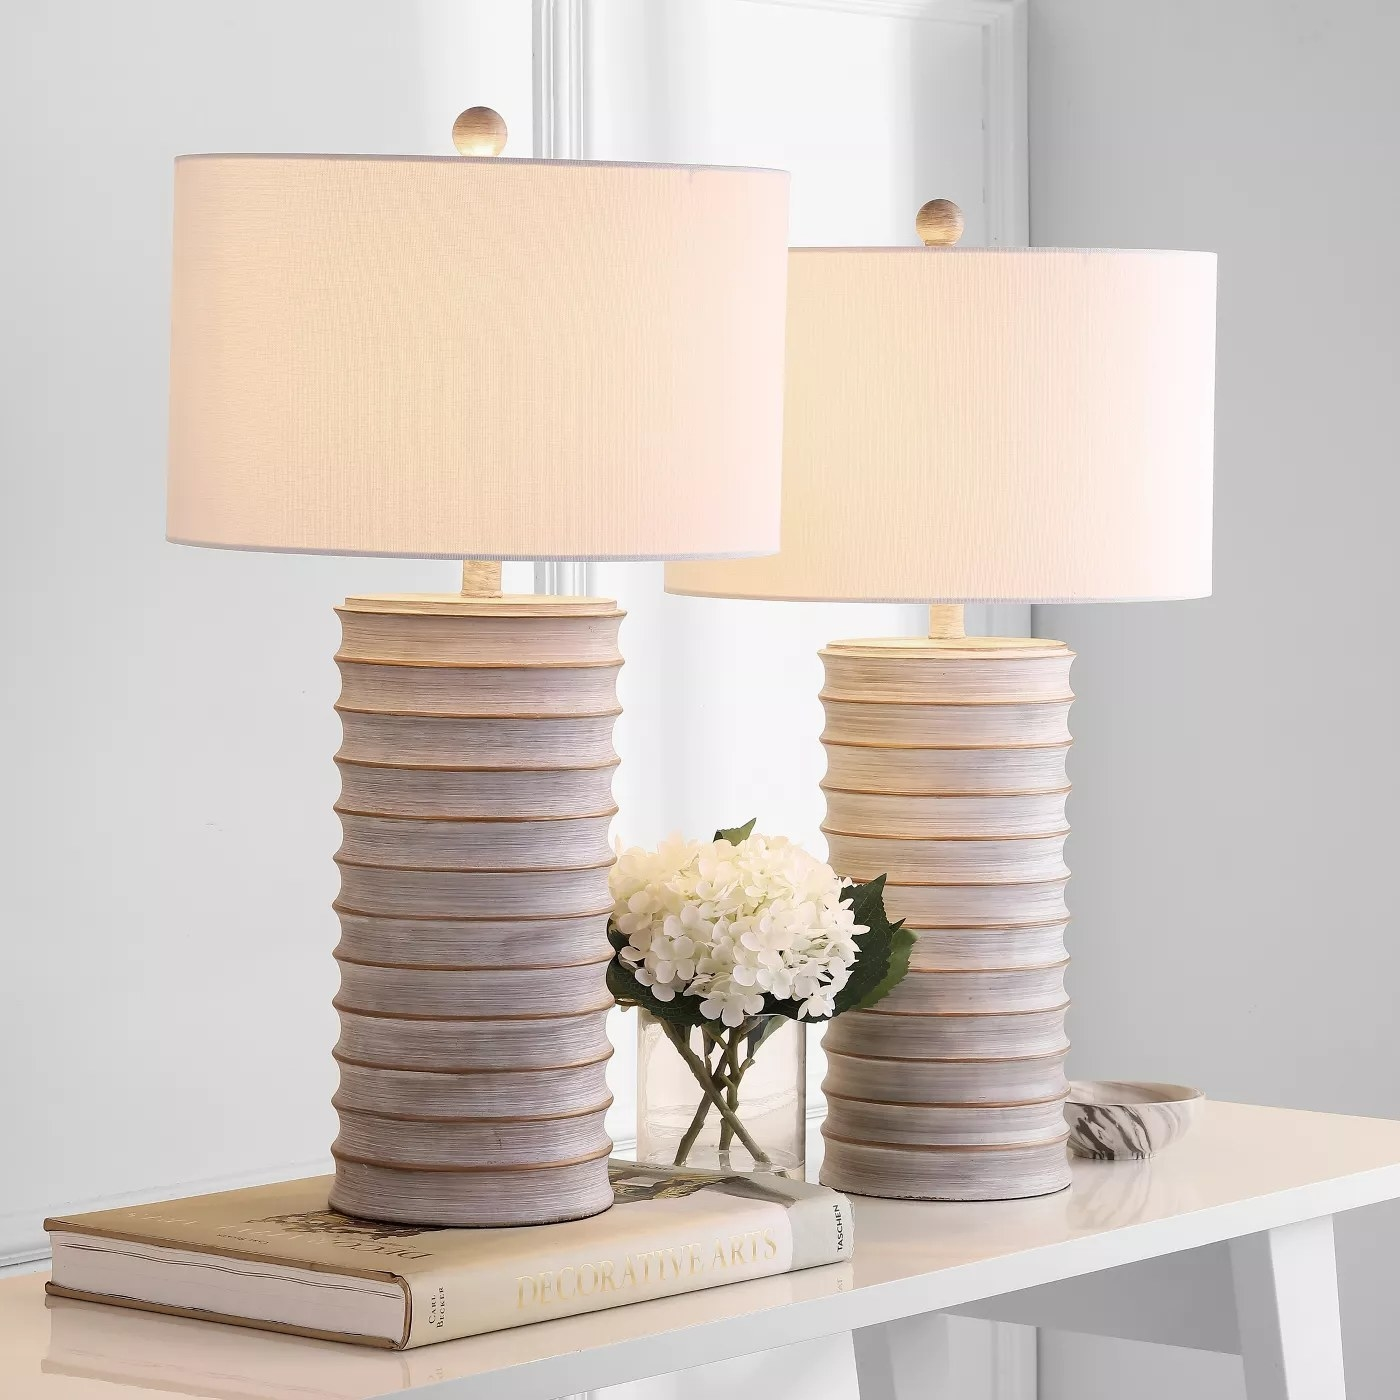 The white-wash table lamps